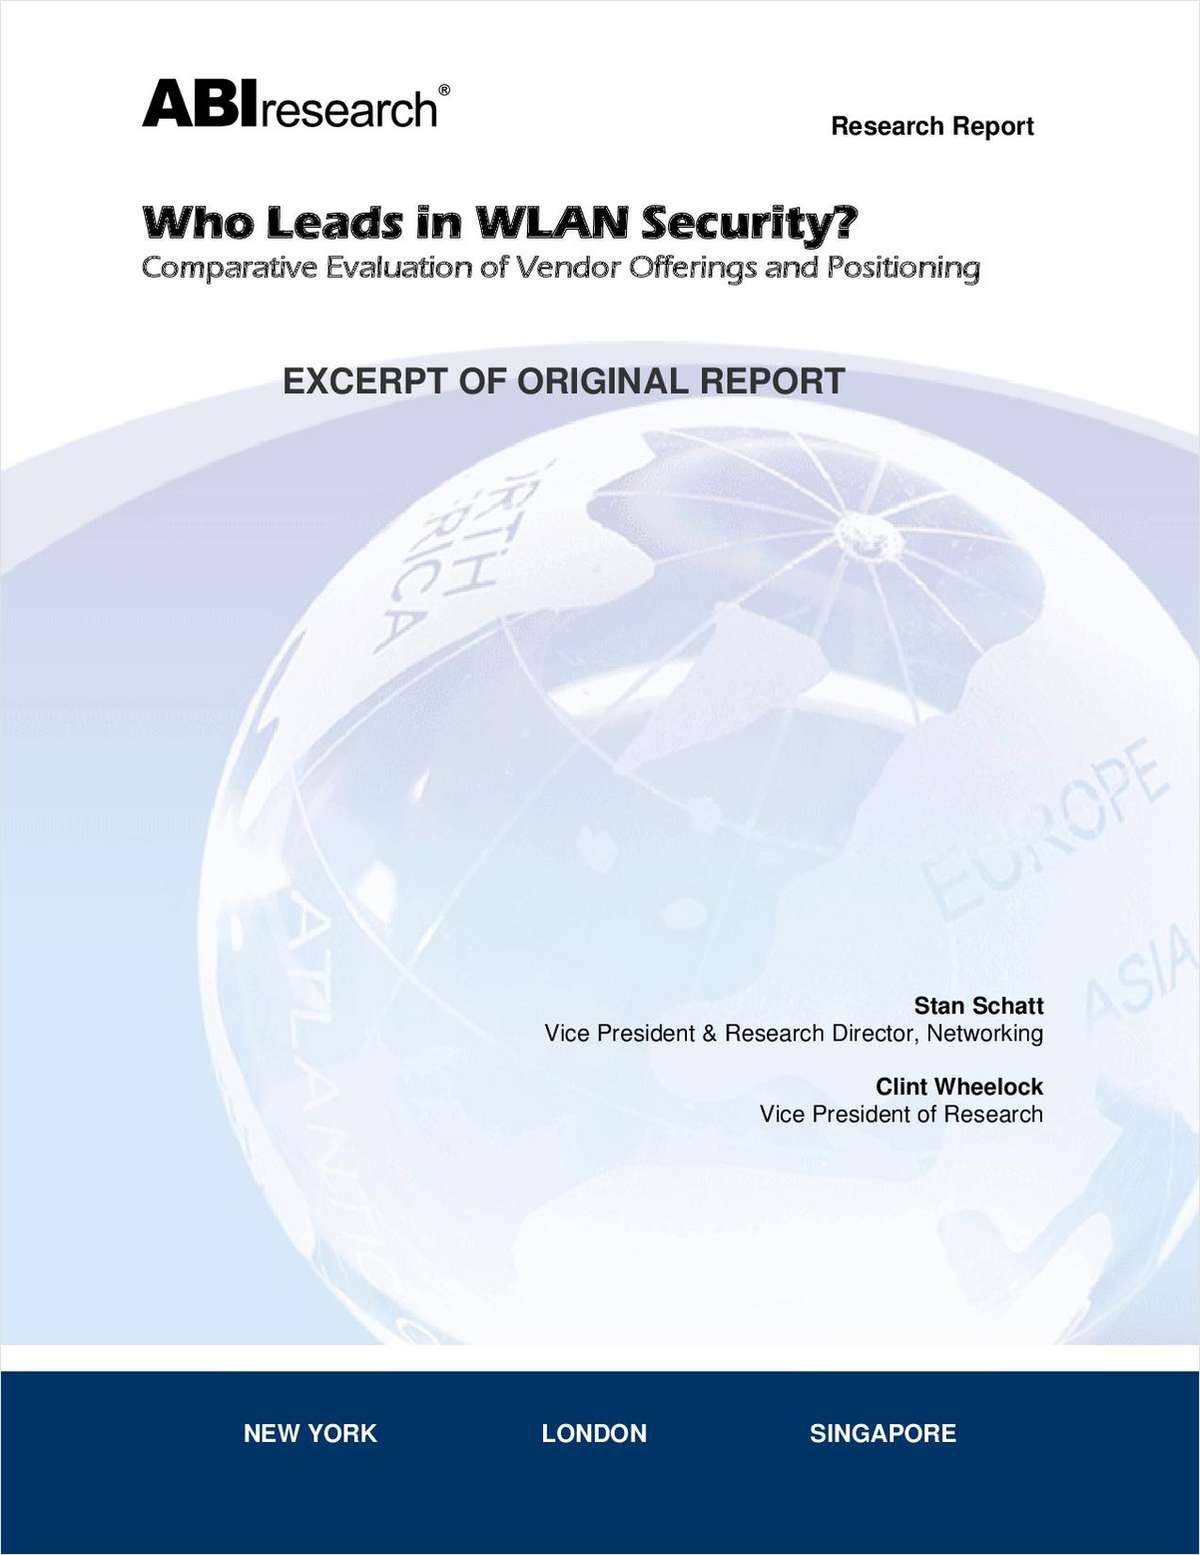 Who Leads in WLAN Security?